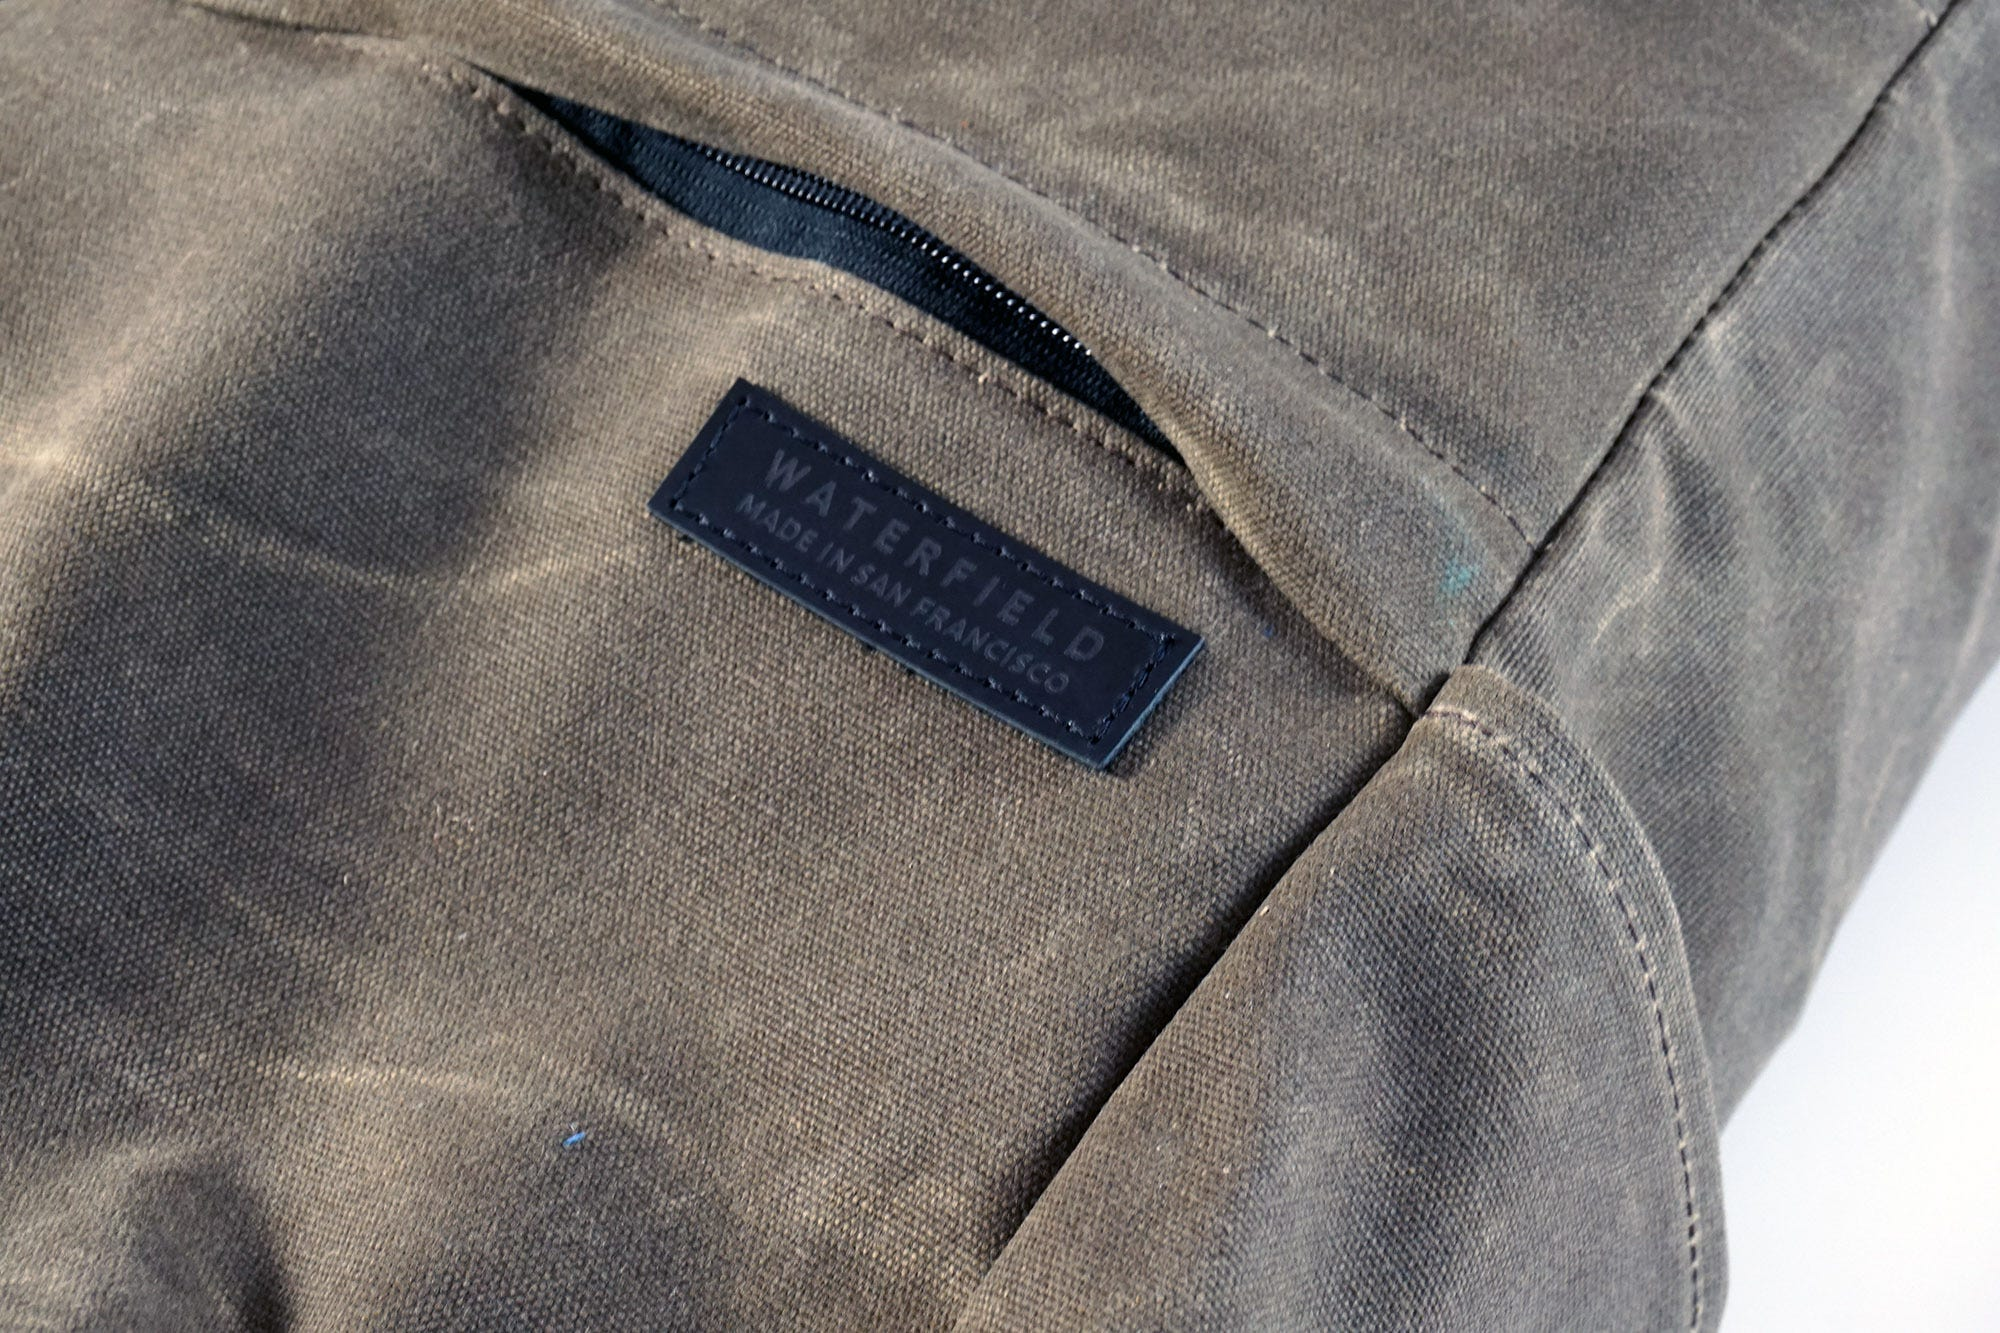 The Tech Rolltop's material is a tough, heavy waxed canvas.